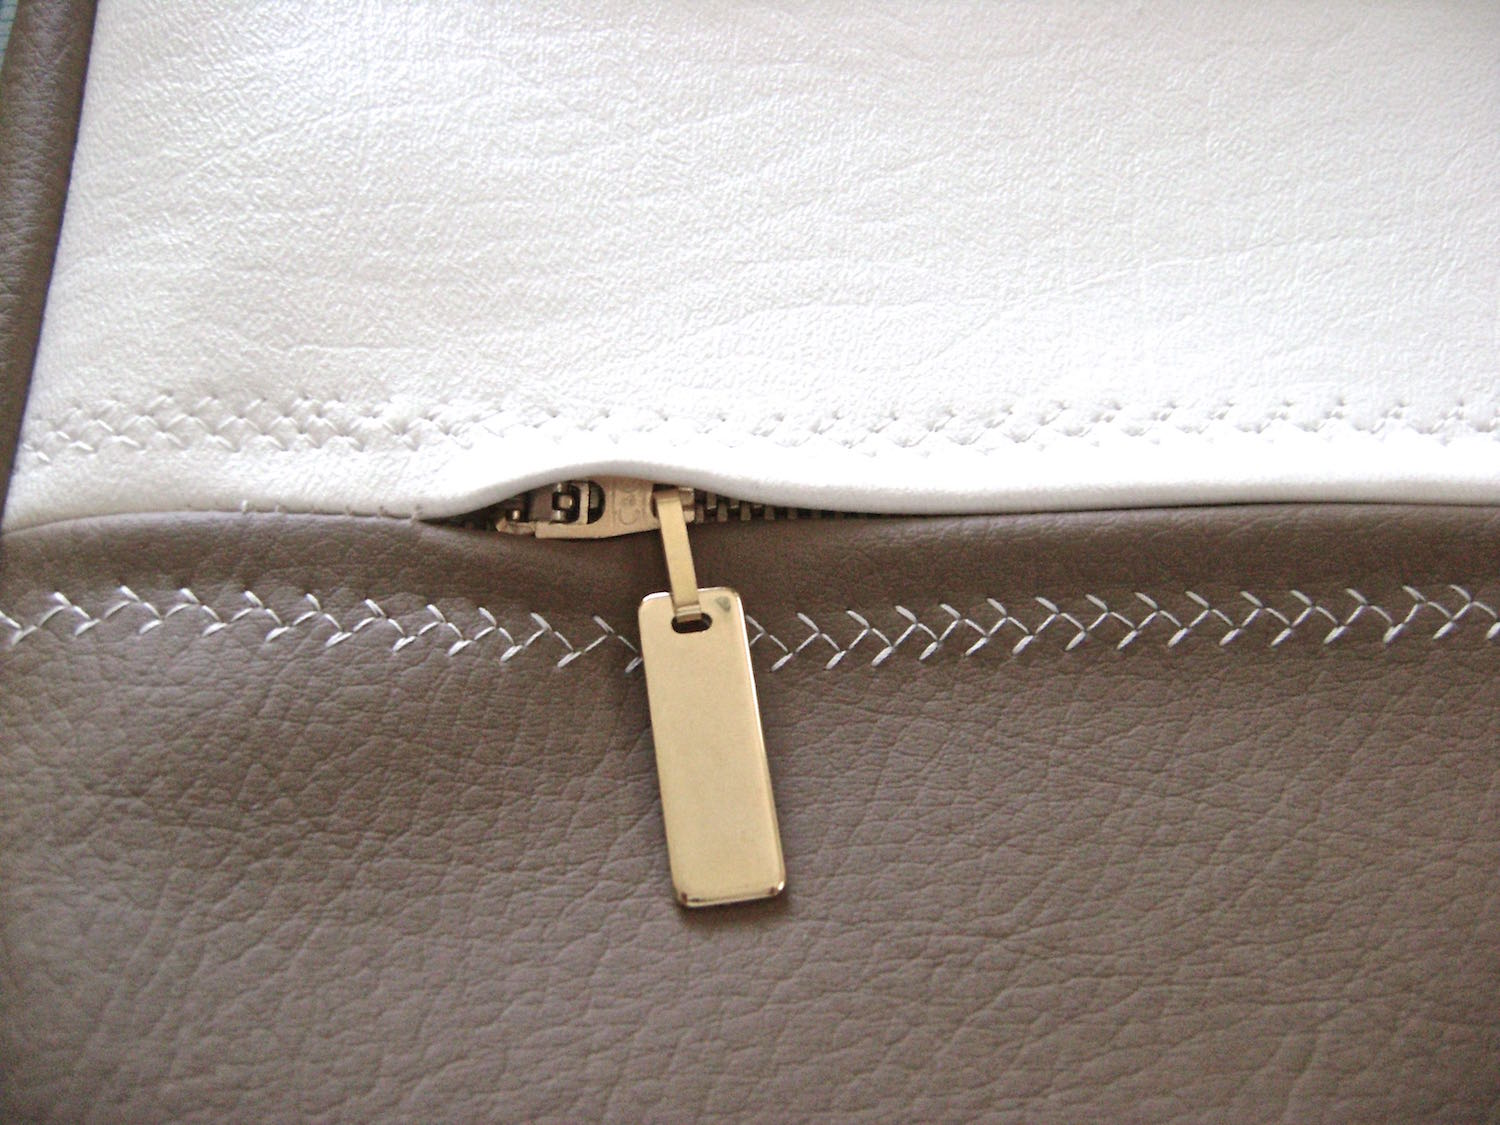 step 23 - Attach decorative zipper pulls to the front and back zippers for easy access.